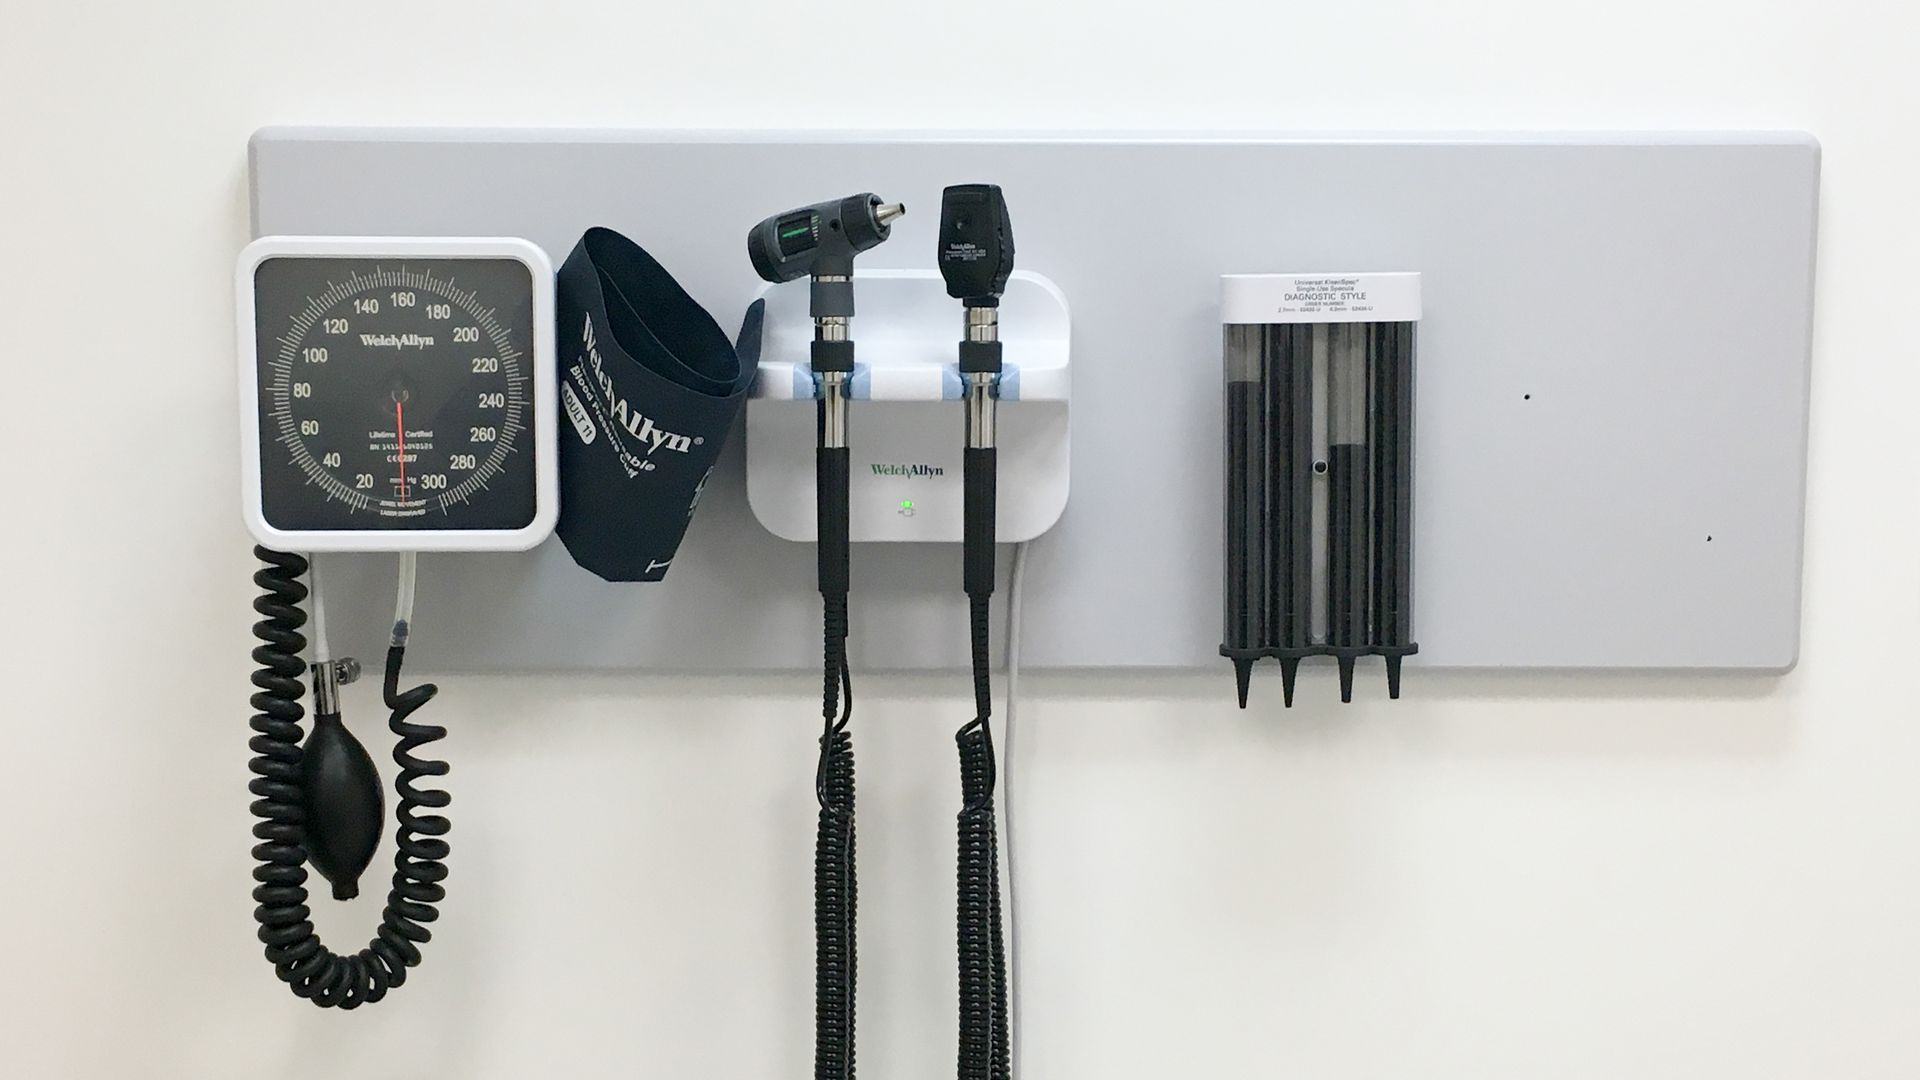 Tools on the wall of a doctor's office, including monitor to measure blood pressure